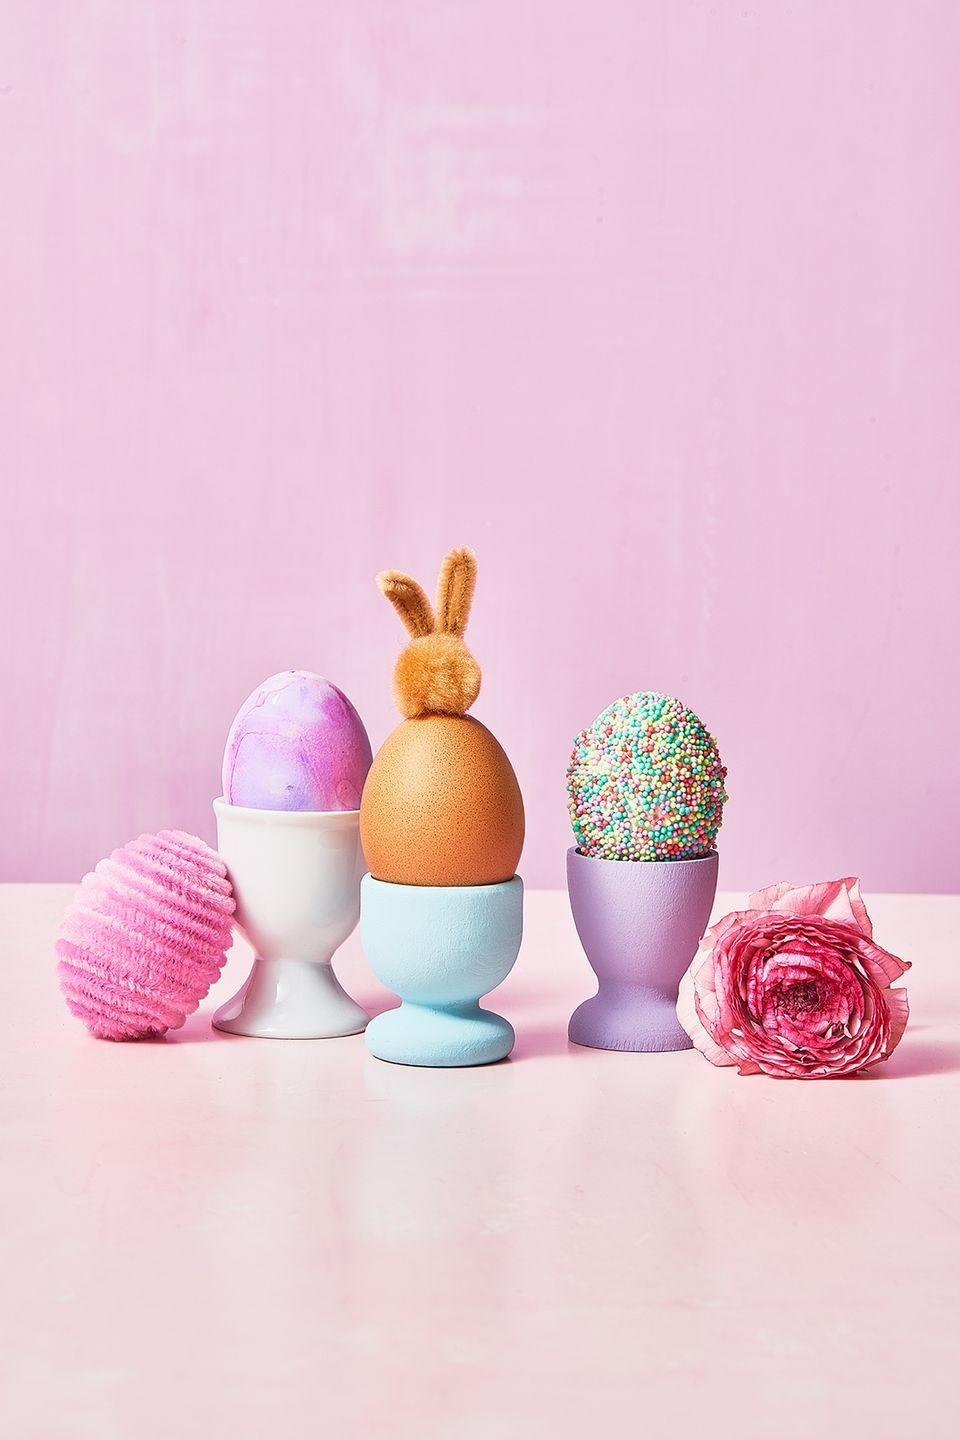 """<p>From colored eggs to chocolate eggs to egg hunts, nothing says """"Easter"""" like the incredible edible. Yet our modern take on collecting, dyeing, and decorating eggs comes from a tradition dating back thousands of years, long before the time of Jesus Christ.</p><p>Many ancient cultures, including the Greeks and Egyptians, saw eggs as a sign of fertility and new life; they used eggs in religious rituals and hung them in pagan temples for mystical purposes, says Martha Zimmerman in her book, <a href=""""http://www.amazon.com/gp/product/1568659466/ref=as_li_ss_tl?ie=UTF8&camp=1789&creative=390957&creativeASIN=1568659466&linkCode=as2&tag=syn-yahoo-20&ascsubtag=%5Bartid%7C10055.g.191%5Bsrc%7Cyahoo-us"""" rel=""""nofollow noopener"""" target=""""_blank"""" data-ylk=""""slk:Celebrating the Christian Year"""" class=""""link rapid-noclick-resp""""><em>Celebrating the Christian Year</em></a>.<br><br>Later, as Christian missionaries observed community members hunting for eggs in spring, they began using the food as a tool to describe Christ's new birth in resurrection. """"They would dye the eggs based on what colors meant to the church: yellow for resurrection, blue for love, red for the blood of Christ. Or, they would paint various scenes from the Bible on eggs and hide them; the child who found the egg would come back and tell the story painted on that egg,"""" says Collins. <br><br><strong>RELATED:</strong> <a href=""""https://www.goodhousekeeping.com/holidays/easter-ideas/g419/easter-egg-decorating-ideas/"""" rel=""""nofollow noopener"""" target=""""_blank"""" data-ylk=""""slk:The Best Egg Decorating Ideas"""" class=""""link rapid-noclick-resp"""">The Best Egg Decorating Ideas</a></p>"""